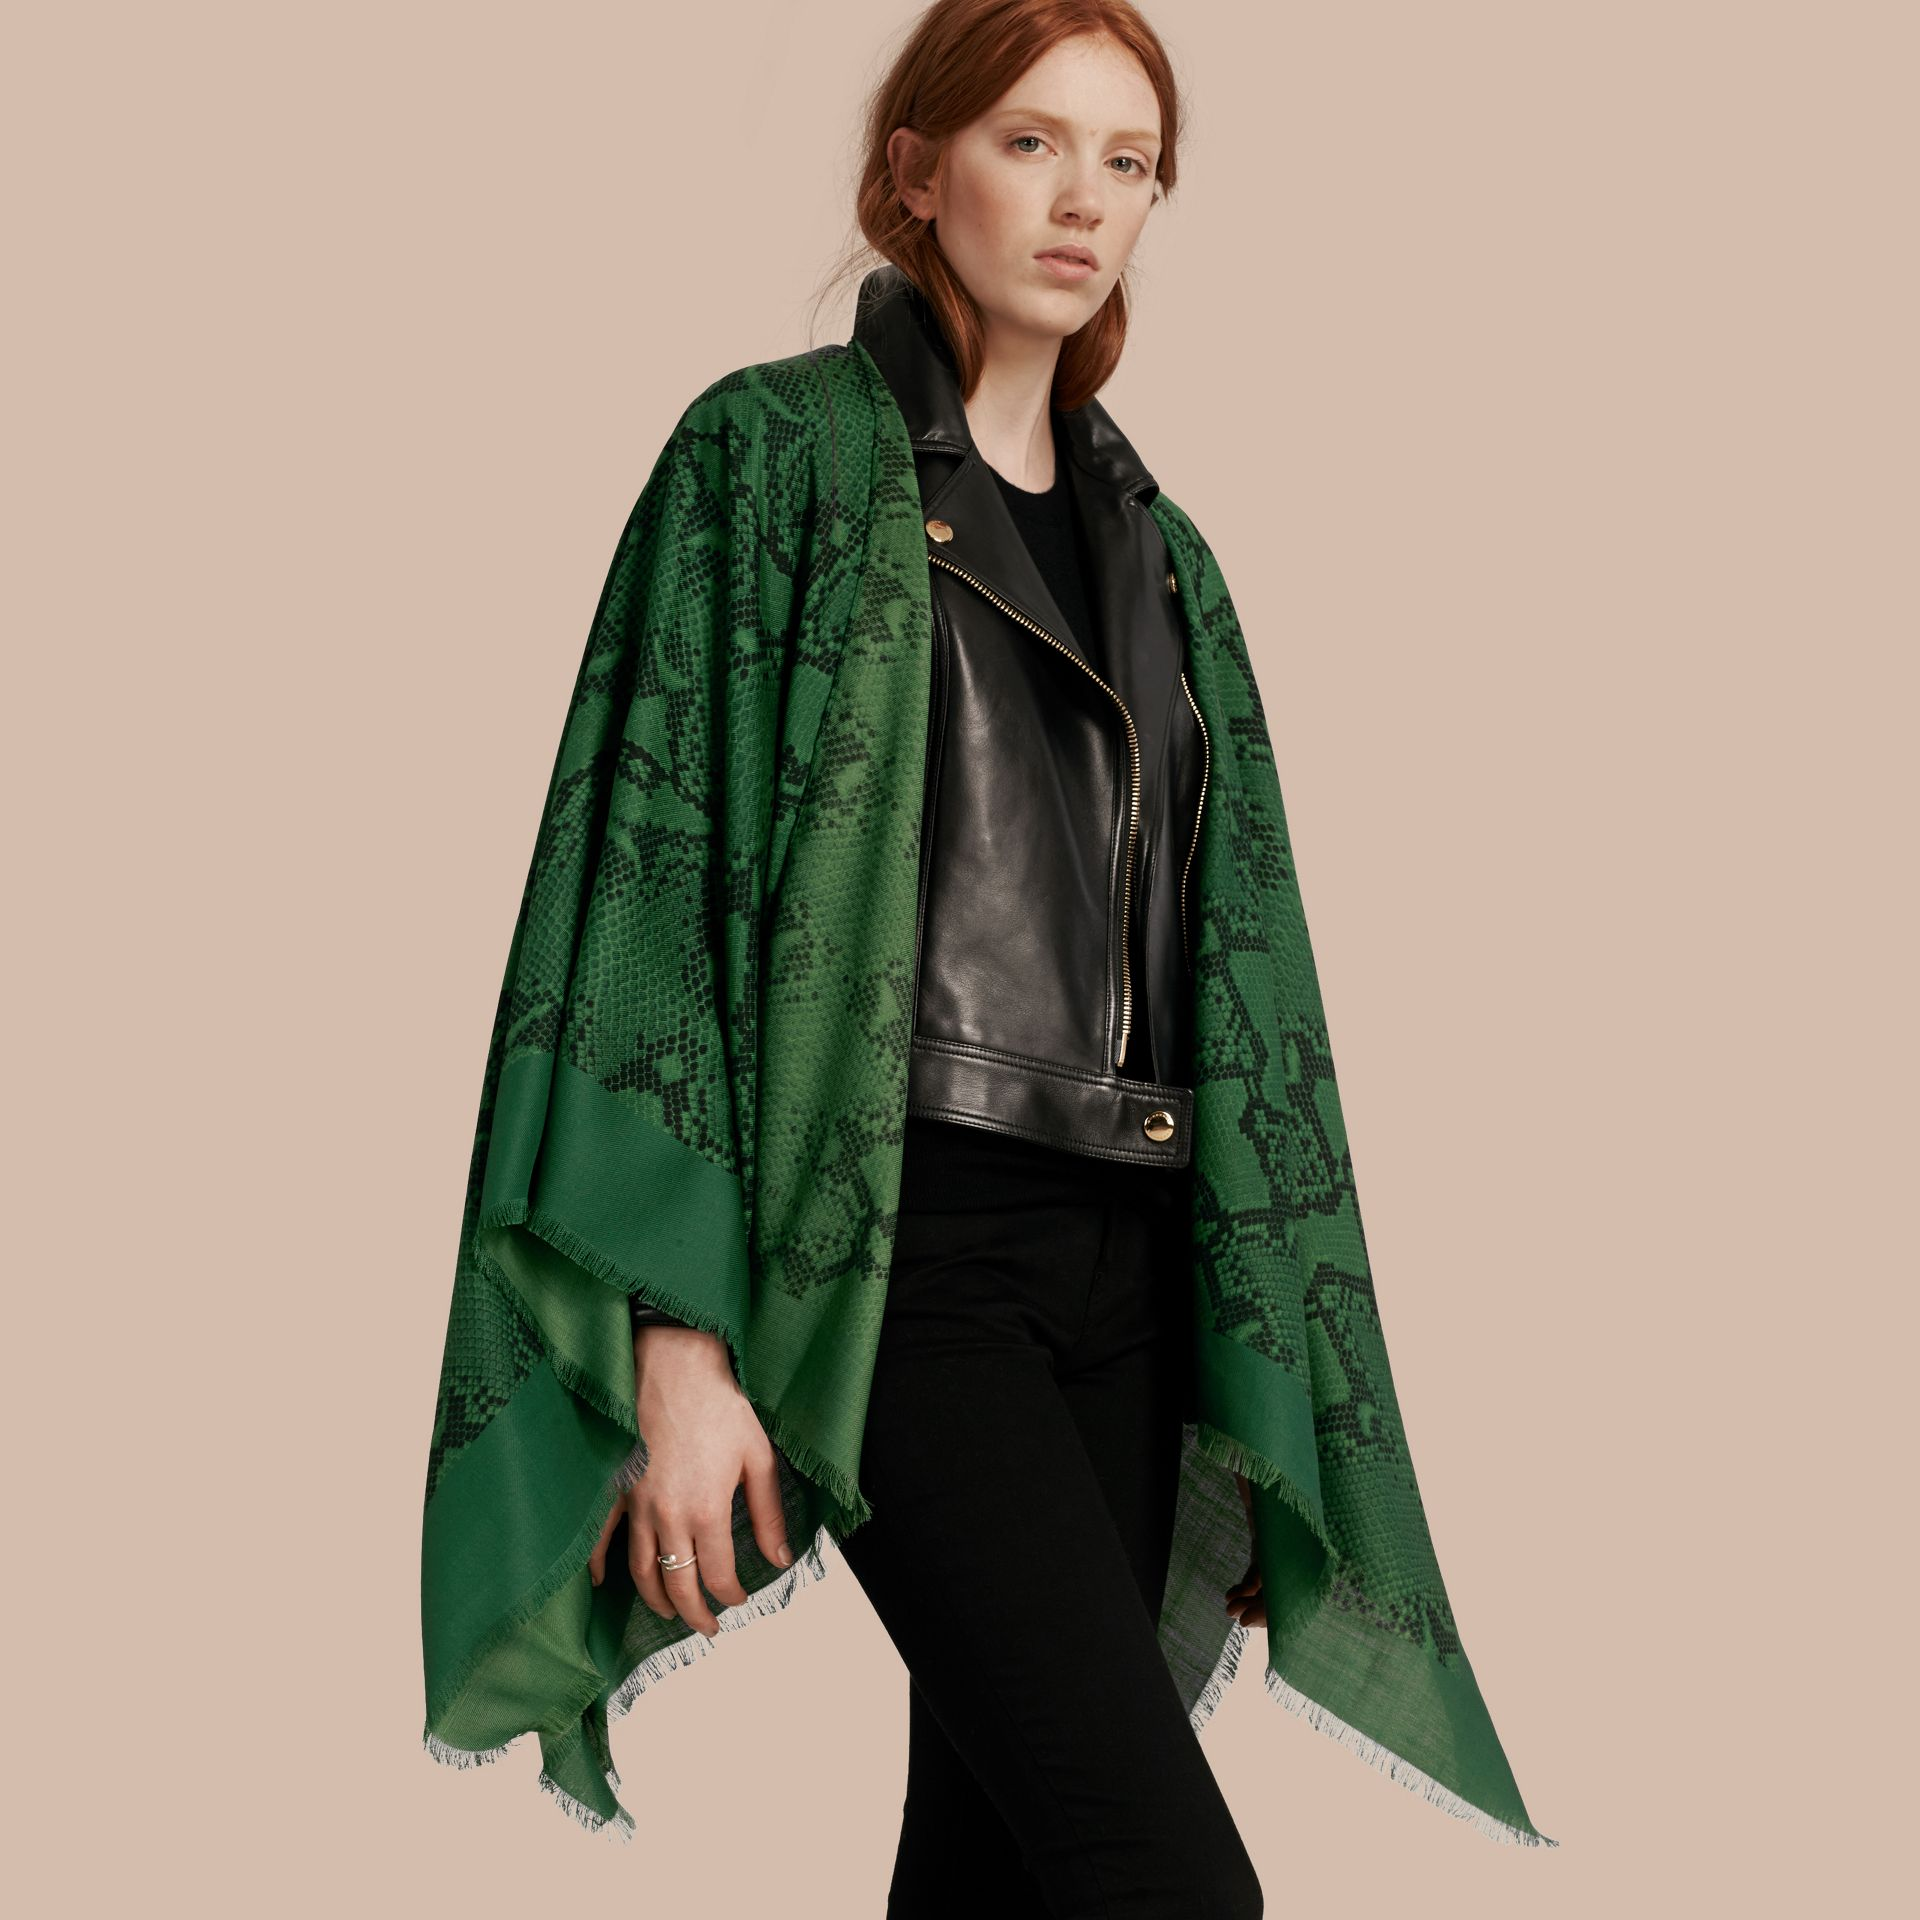 Bright green Lightweight Python Print Wool Cashmere Silk Poncho Bright Green - gallery image 1